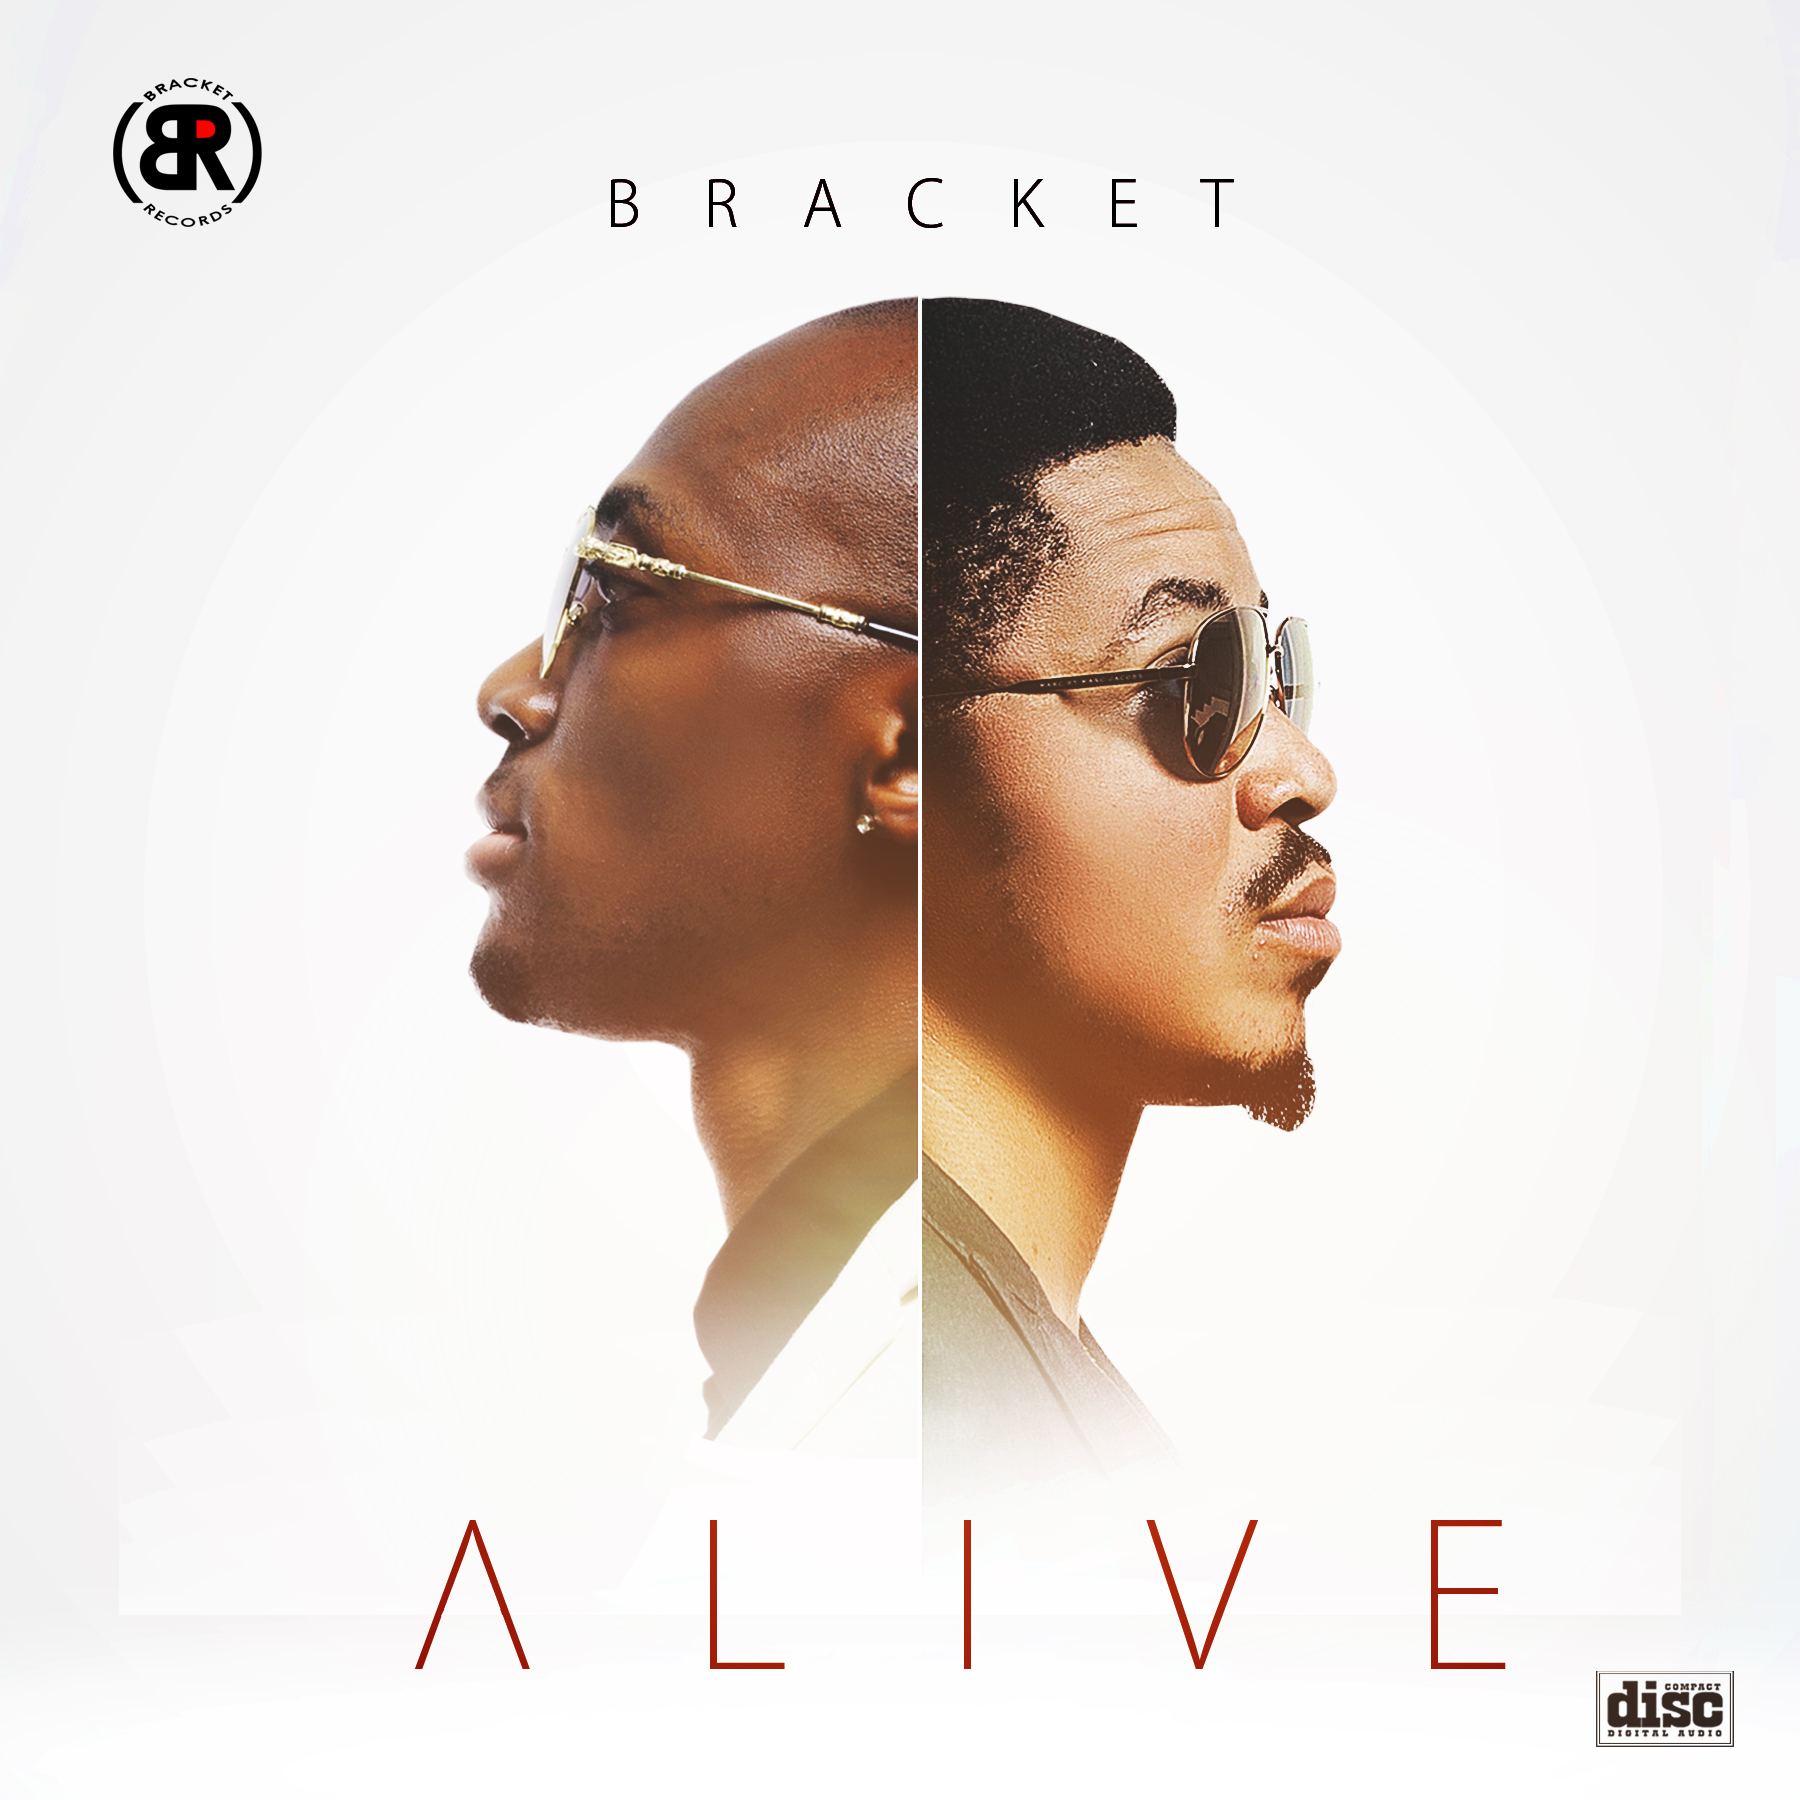 Album Art and Track List for the upcoming ALIVE Album by BRACKET